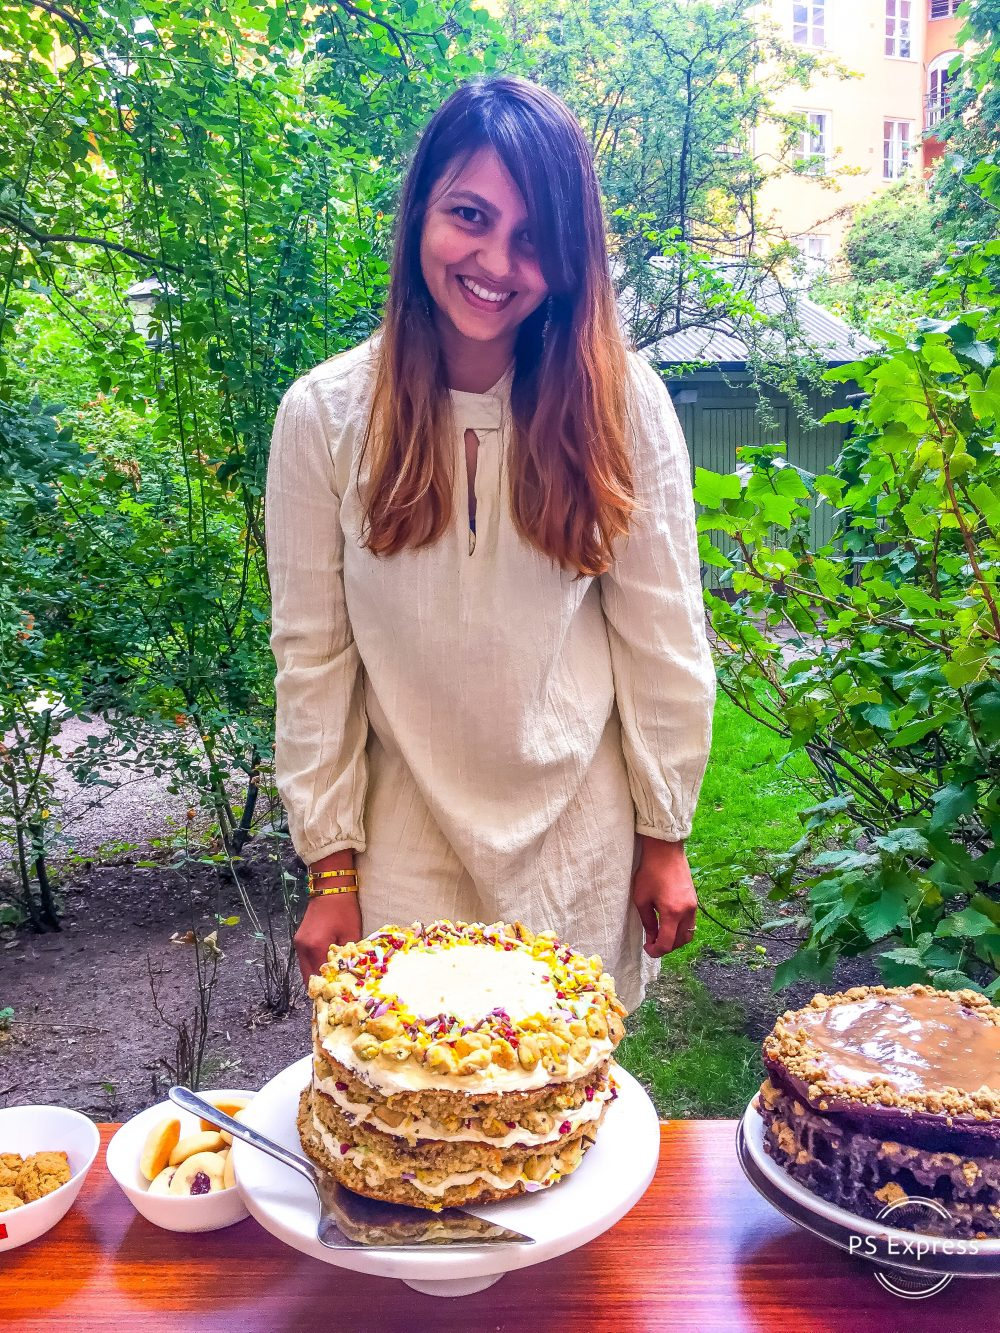 Meet the waves new blogger, with a passion for legumes, Divya Jagasia